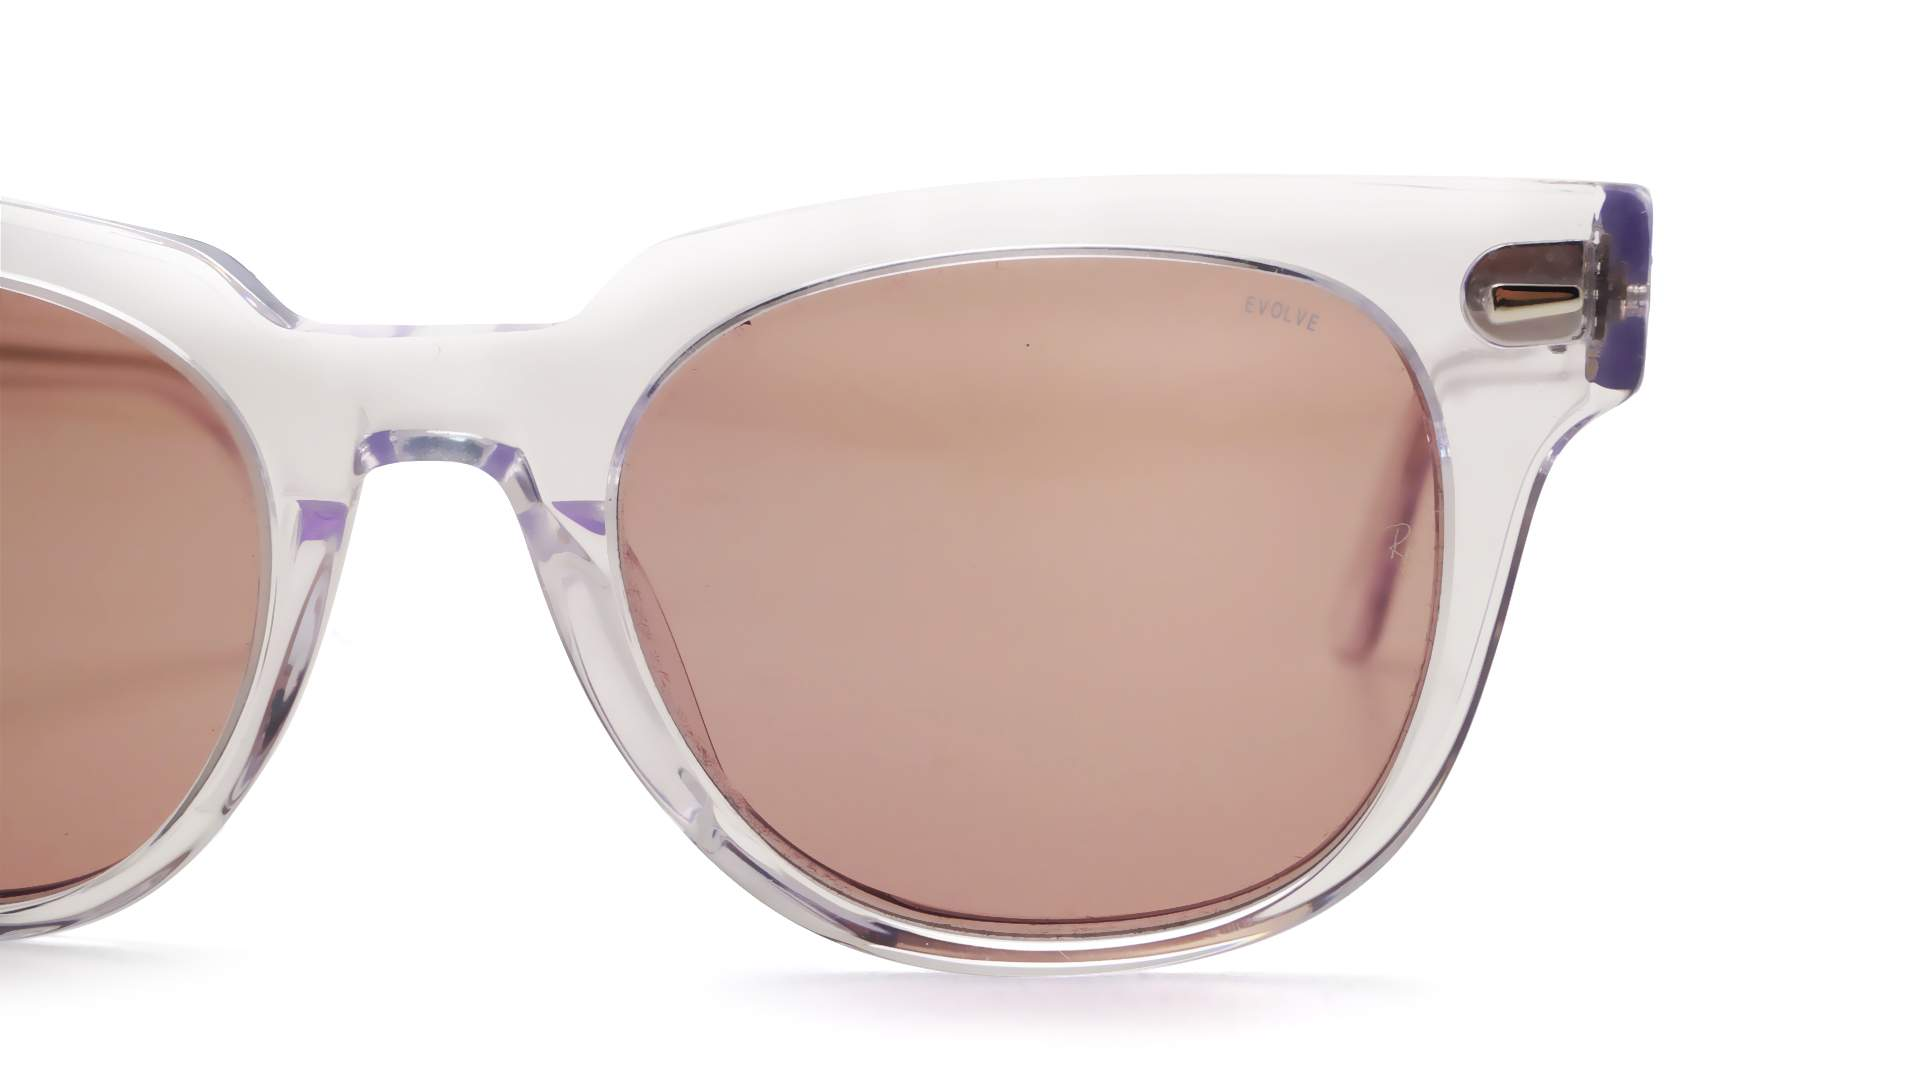 b5ec9737a7b7c8 Sunglasses Ray-Ban Meteor Evolve Clear RB2168 912 Z0 50-20 Medium  Photochromic